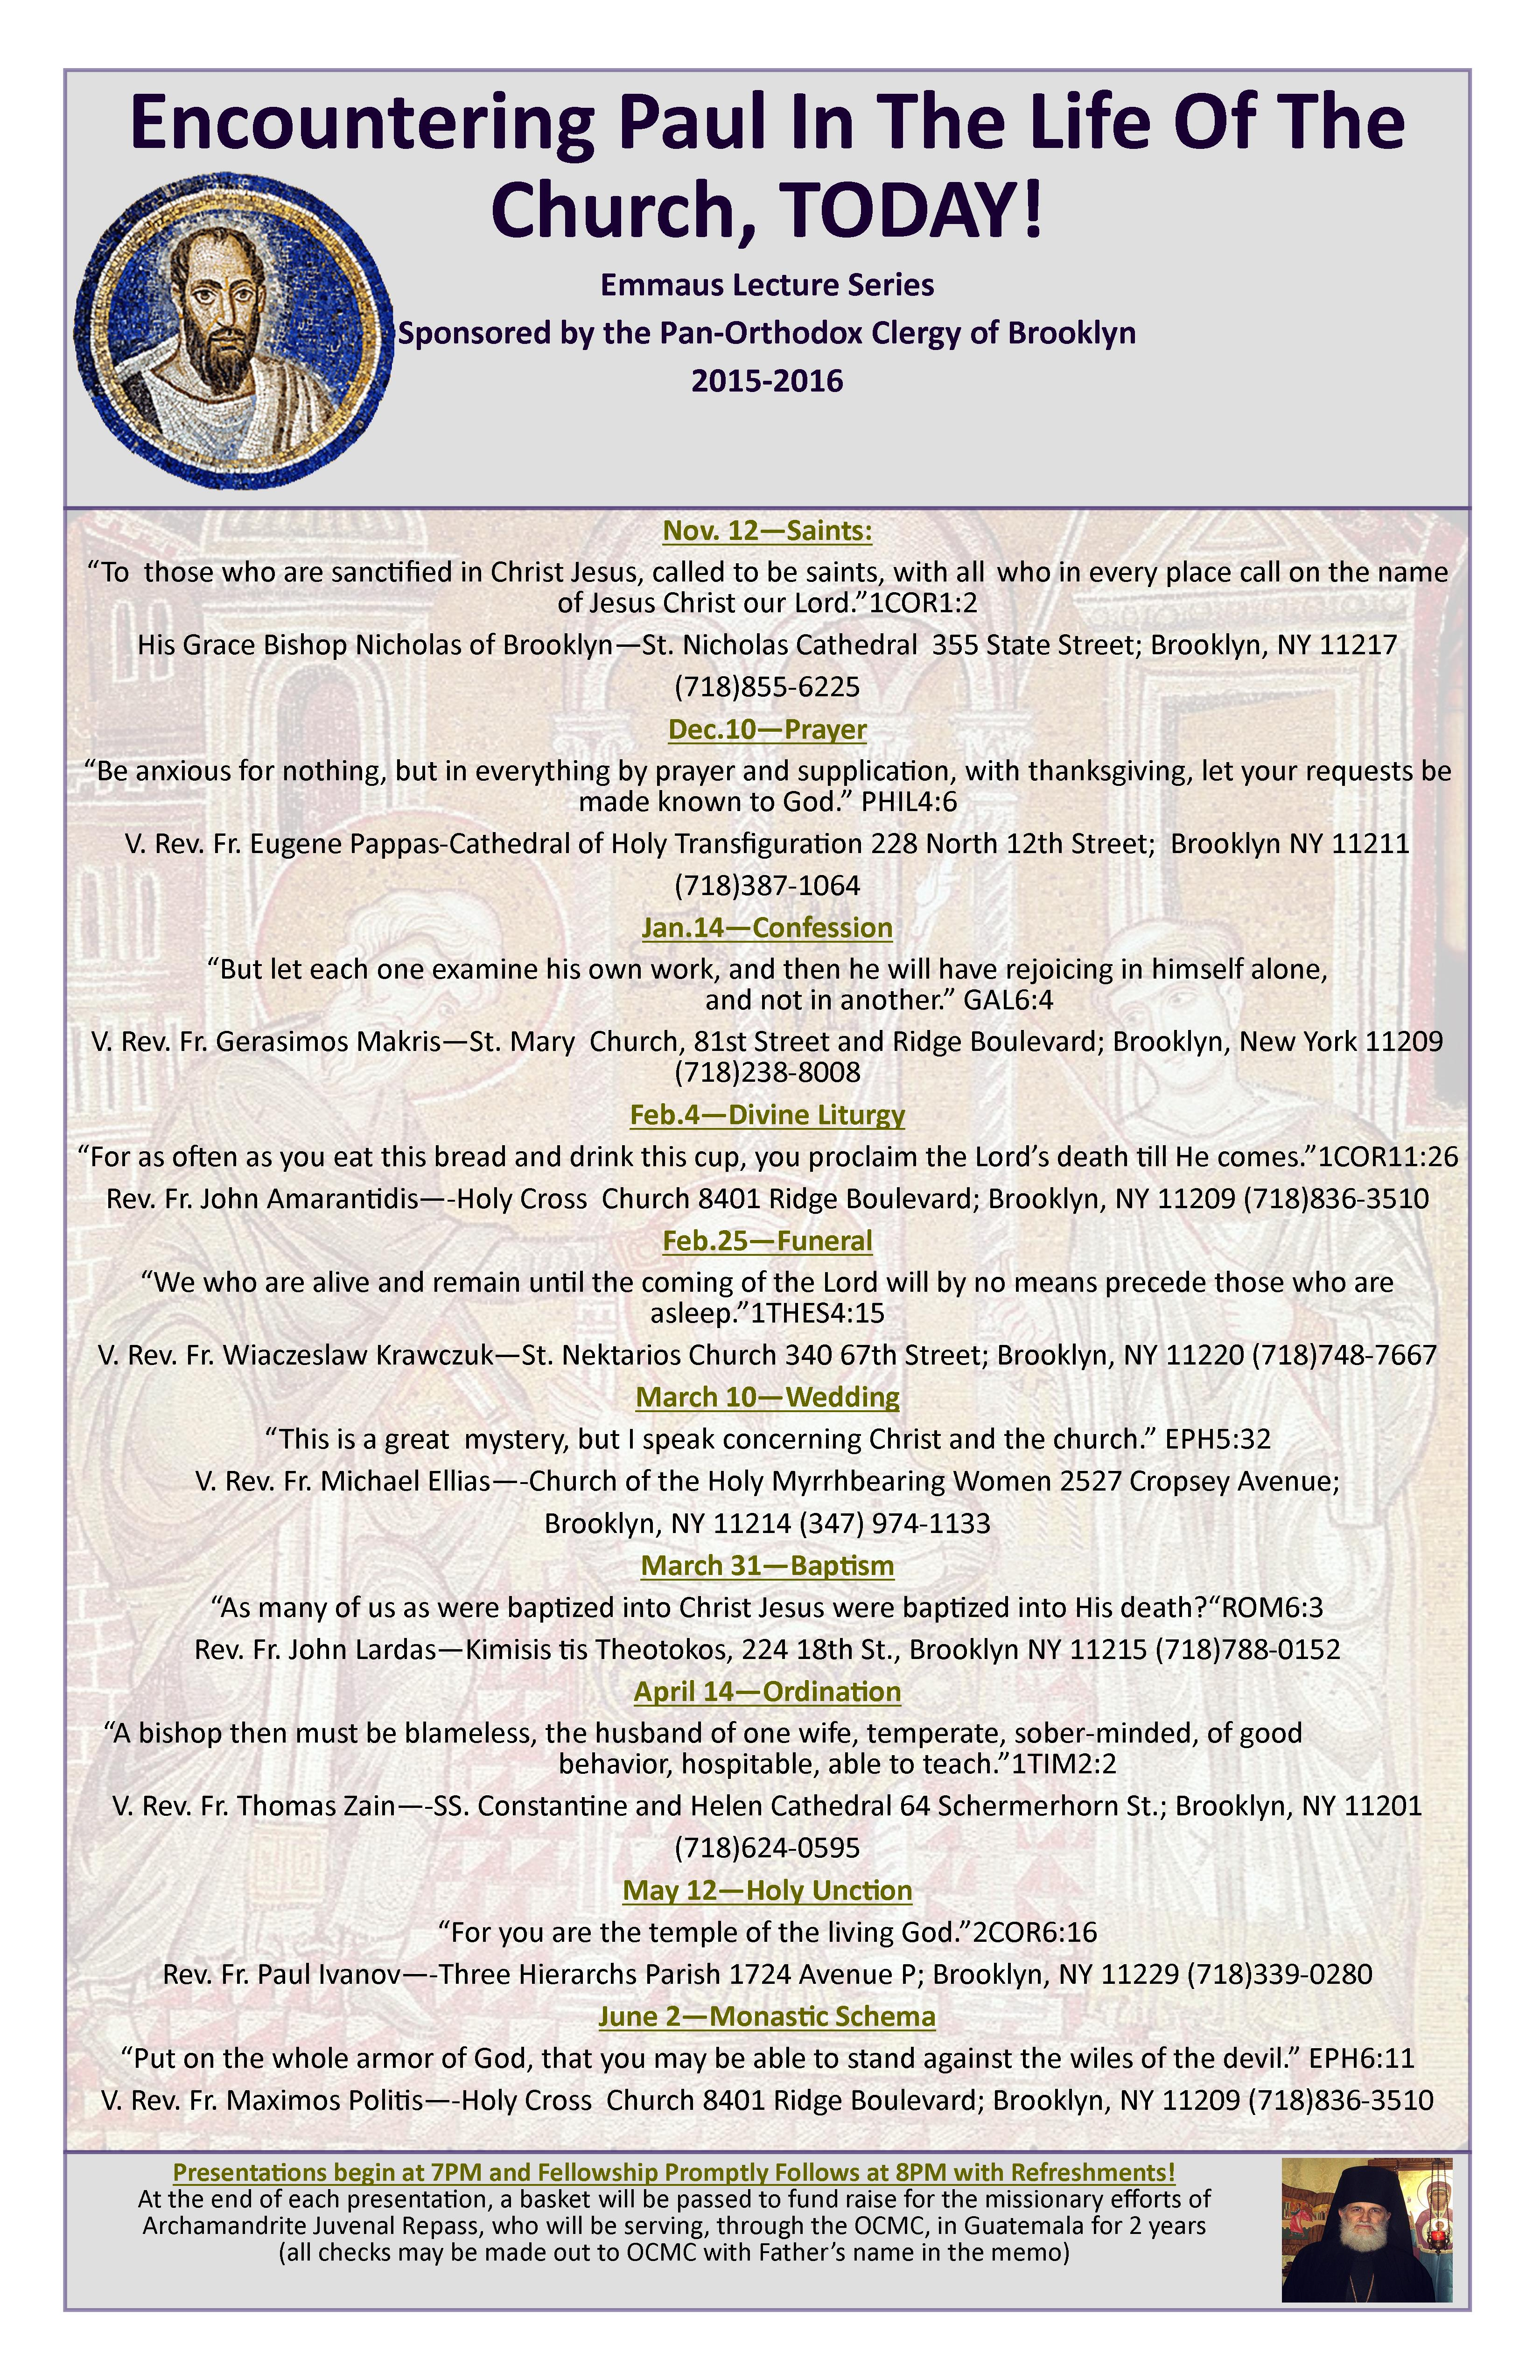 Emmaus Lecture Series: Brooklyn, NY @ Three Hierarchs Orthodox Church   | New York | United States